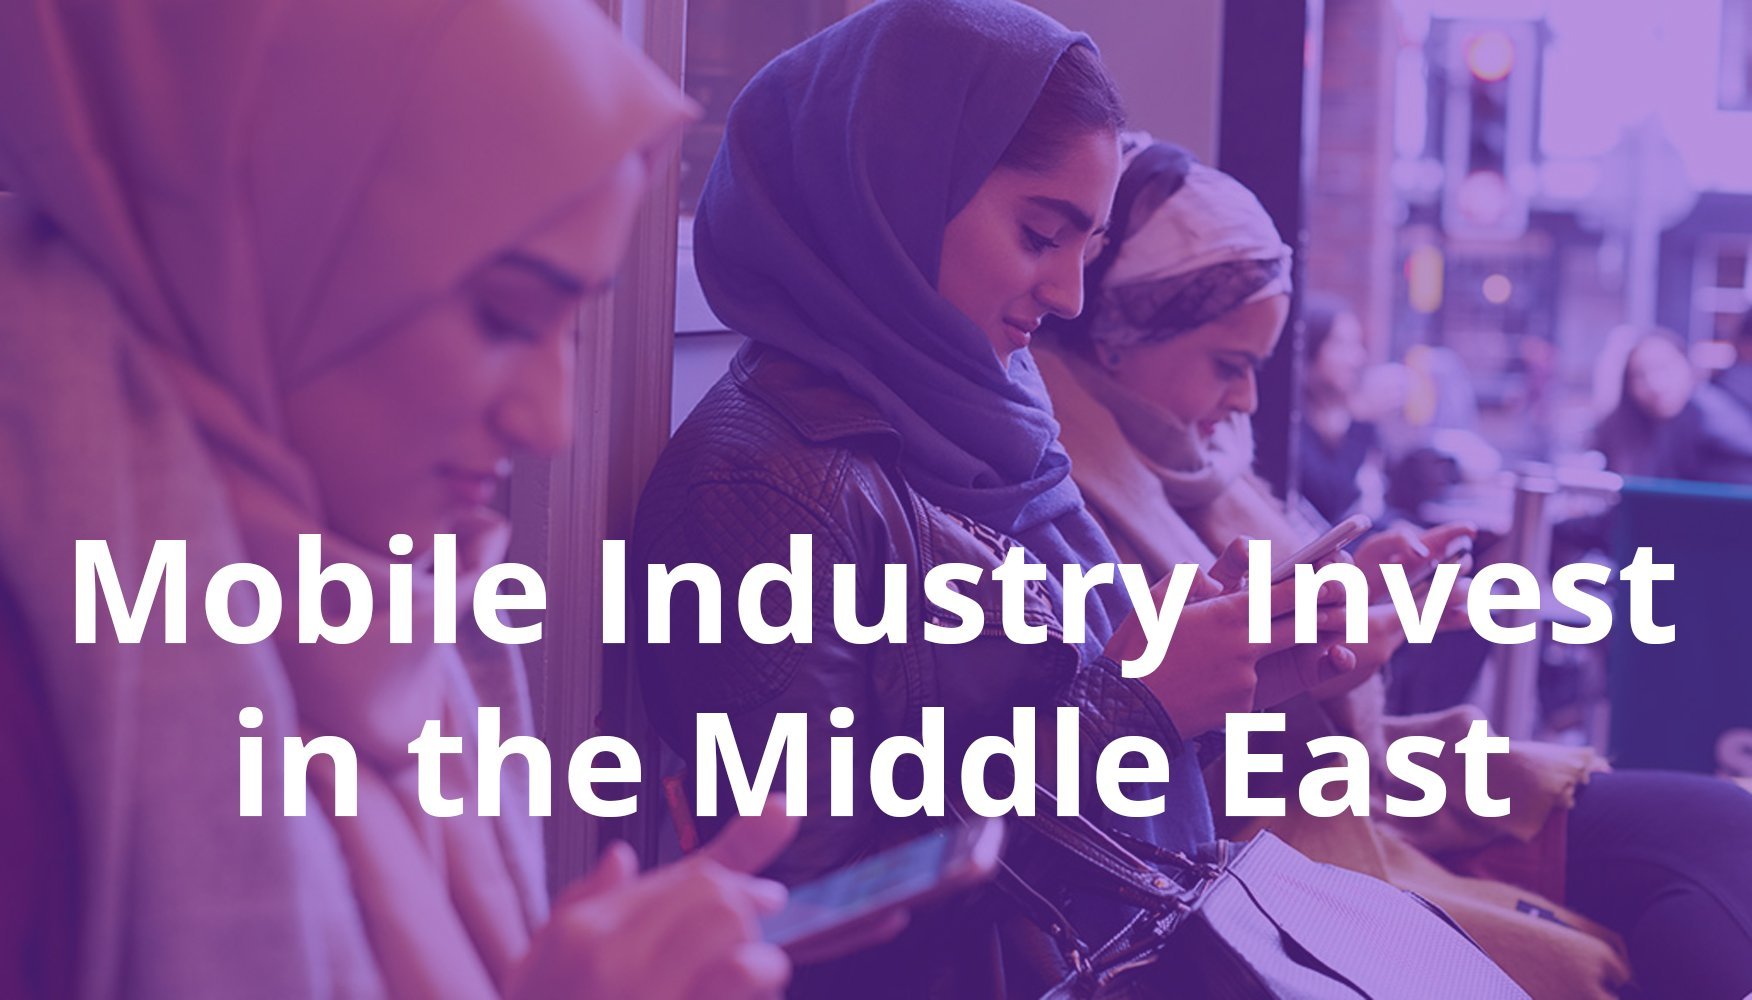 Mobile industry invest in the Middle East: ad spending has increased by 233%